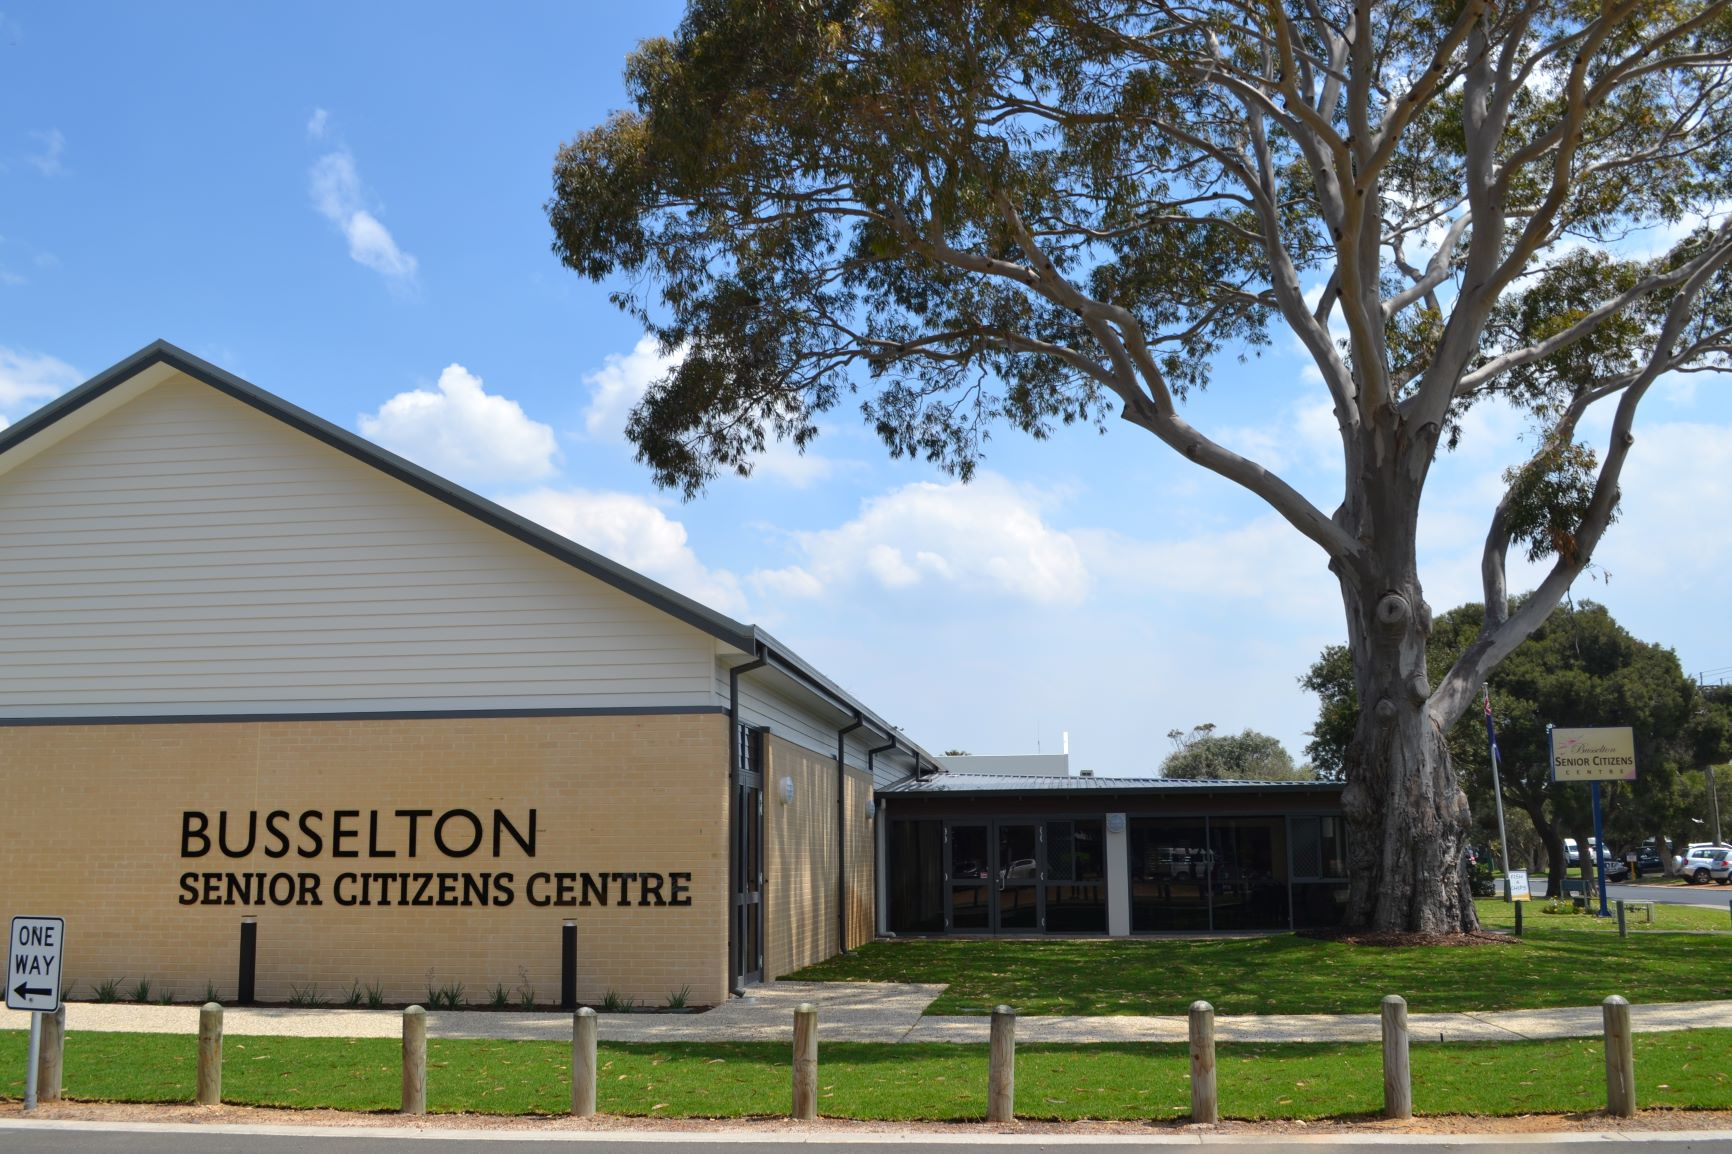 Busselton Senior Citizens Centre